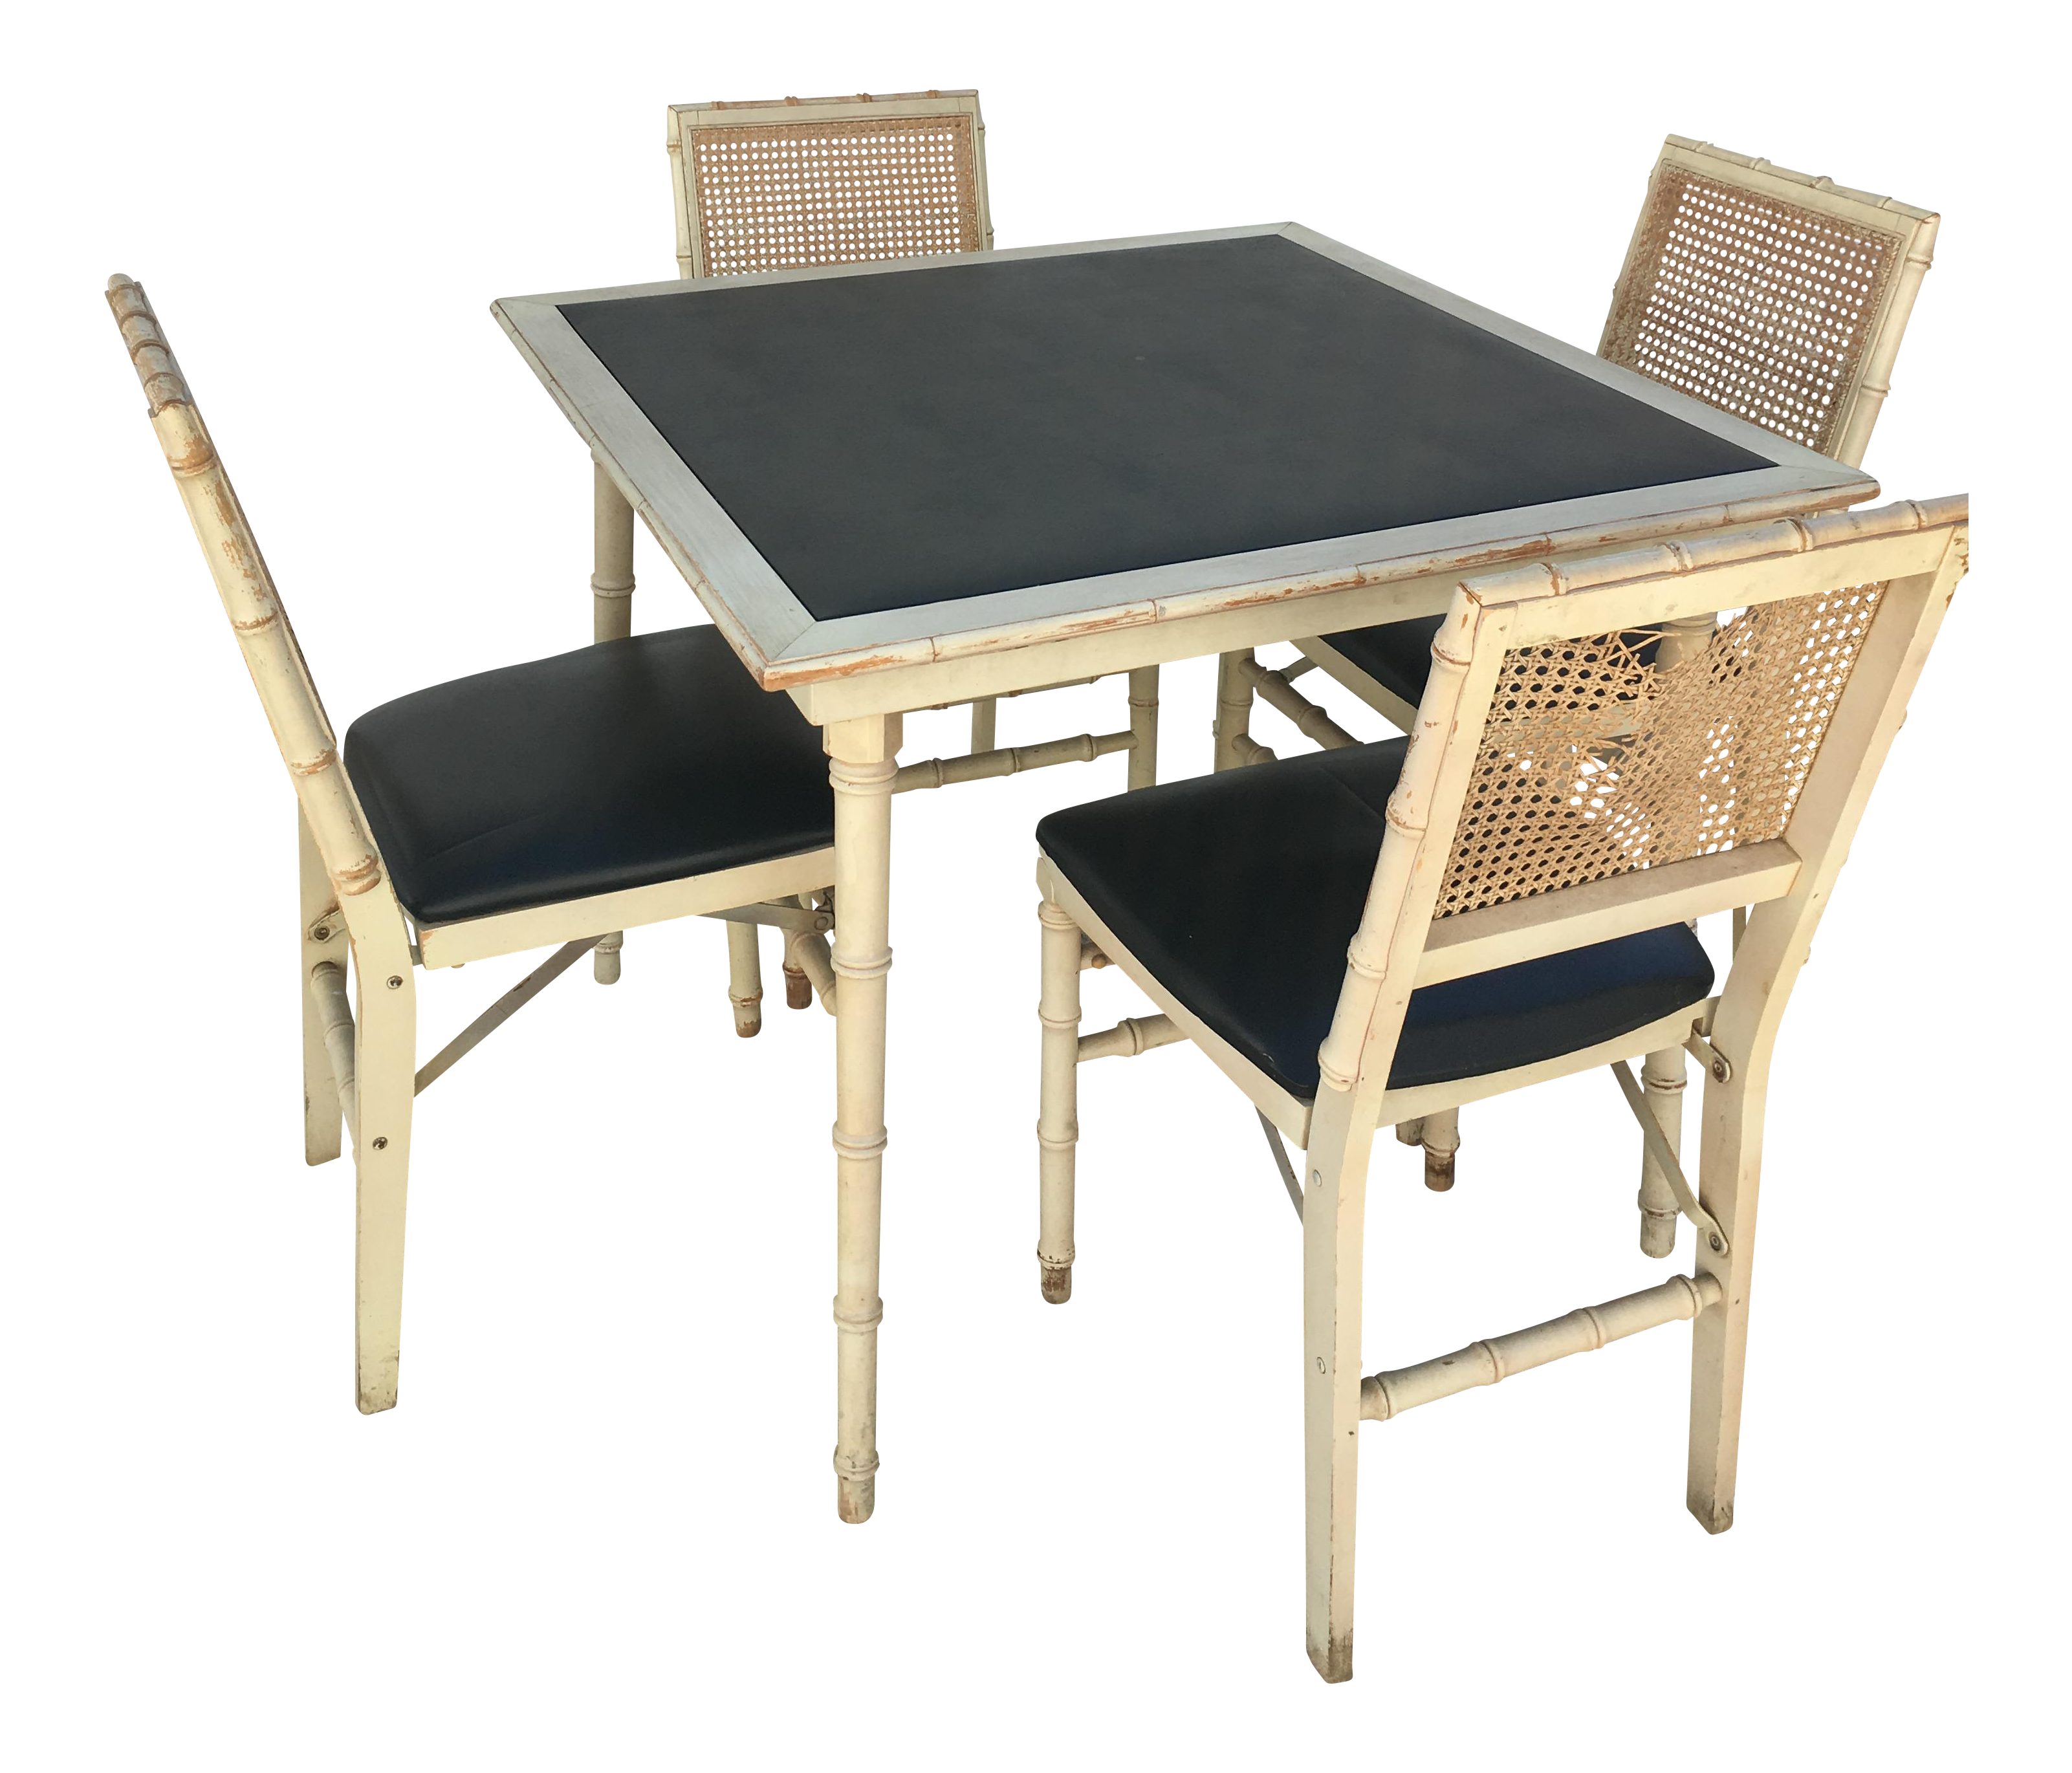 Stakmore Faux Bamboo Foldable Vintage Game Table U0026 Chairs